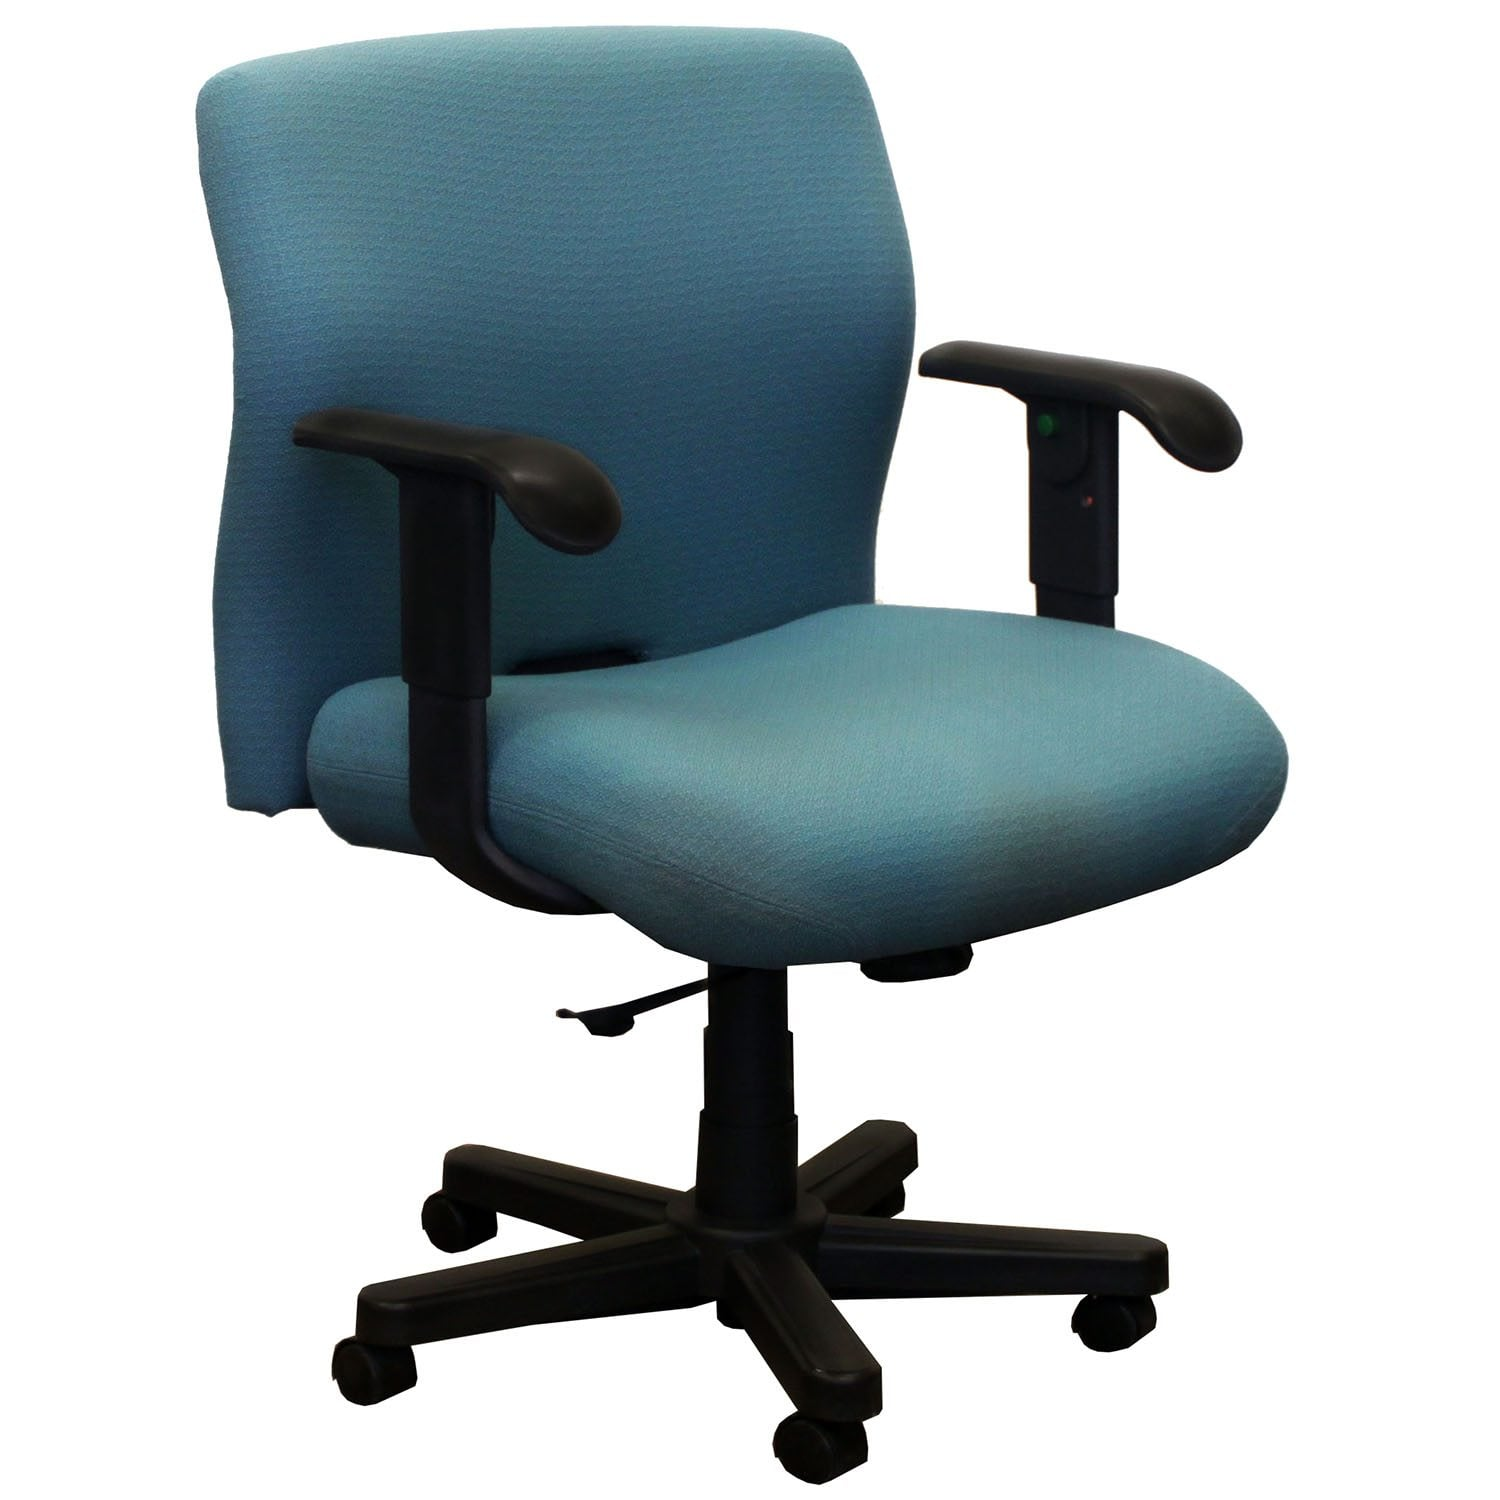 Teal Chair Knoll Bulldog Used Wide Midback Task Chair Teal